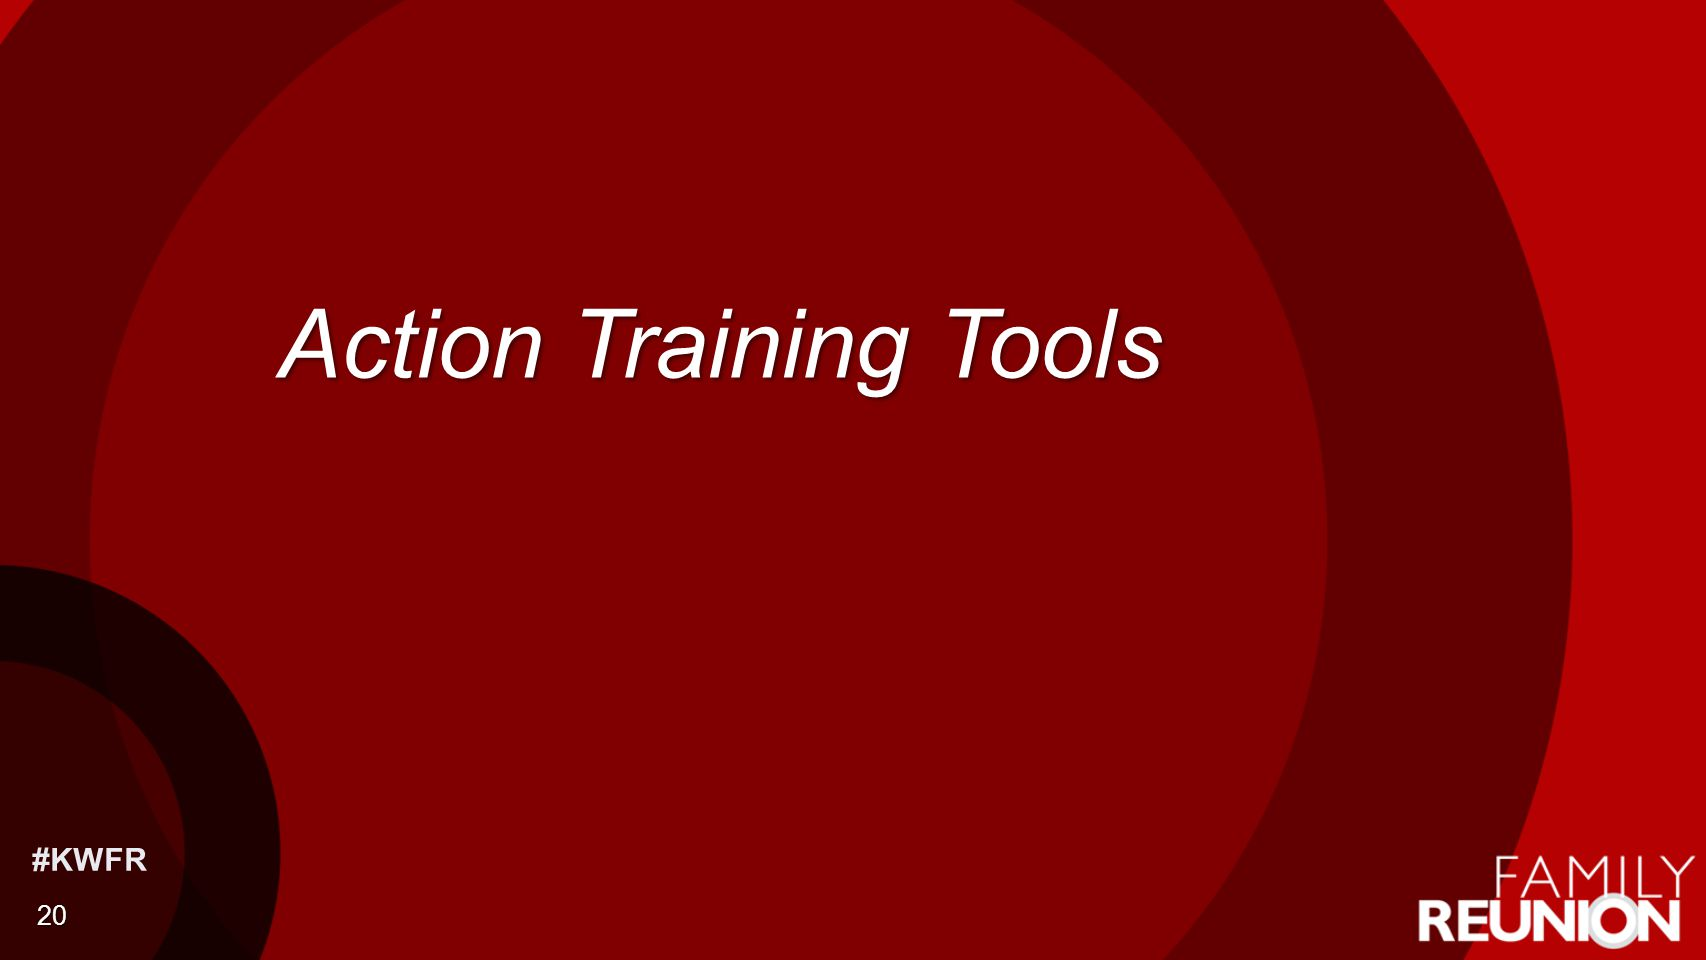 Action Training Tools